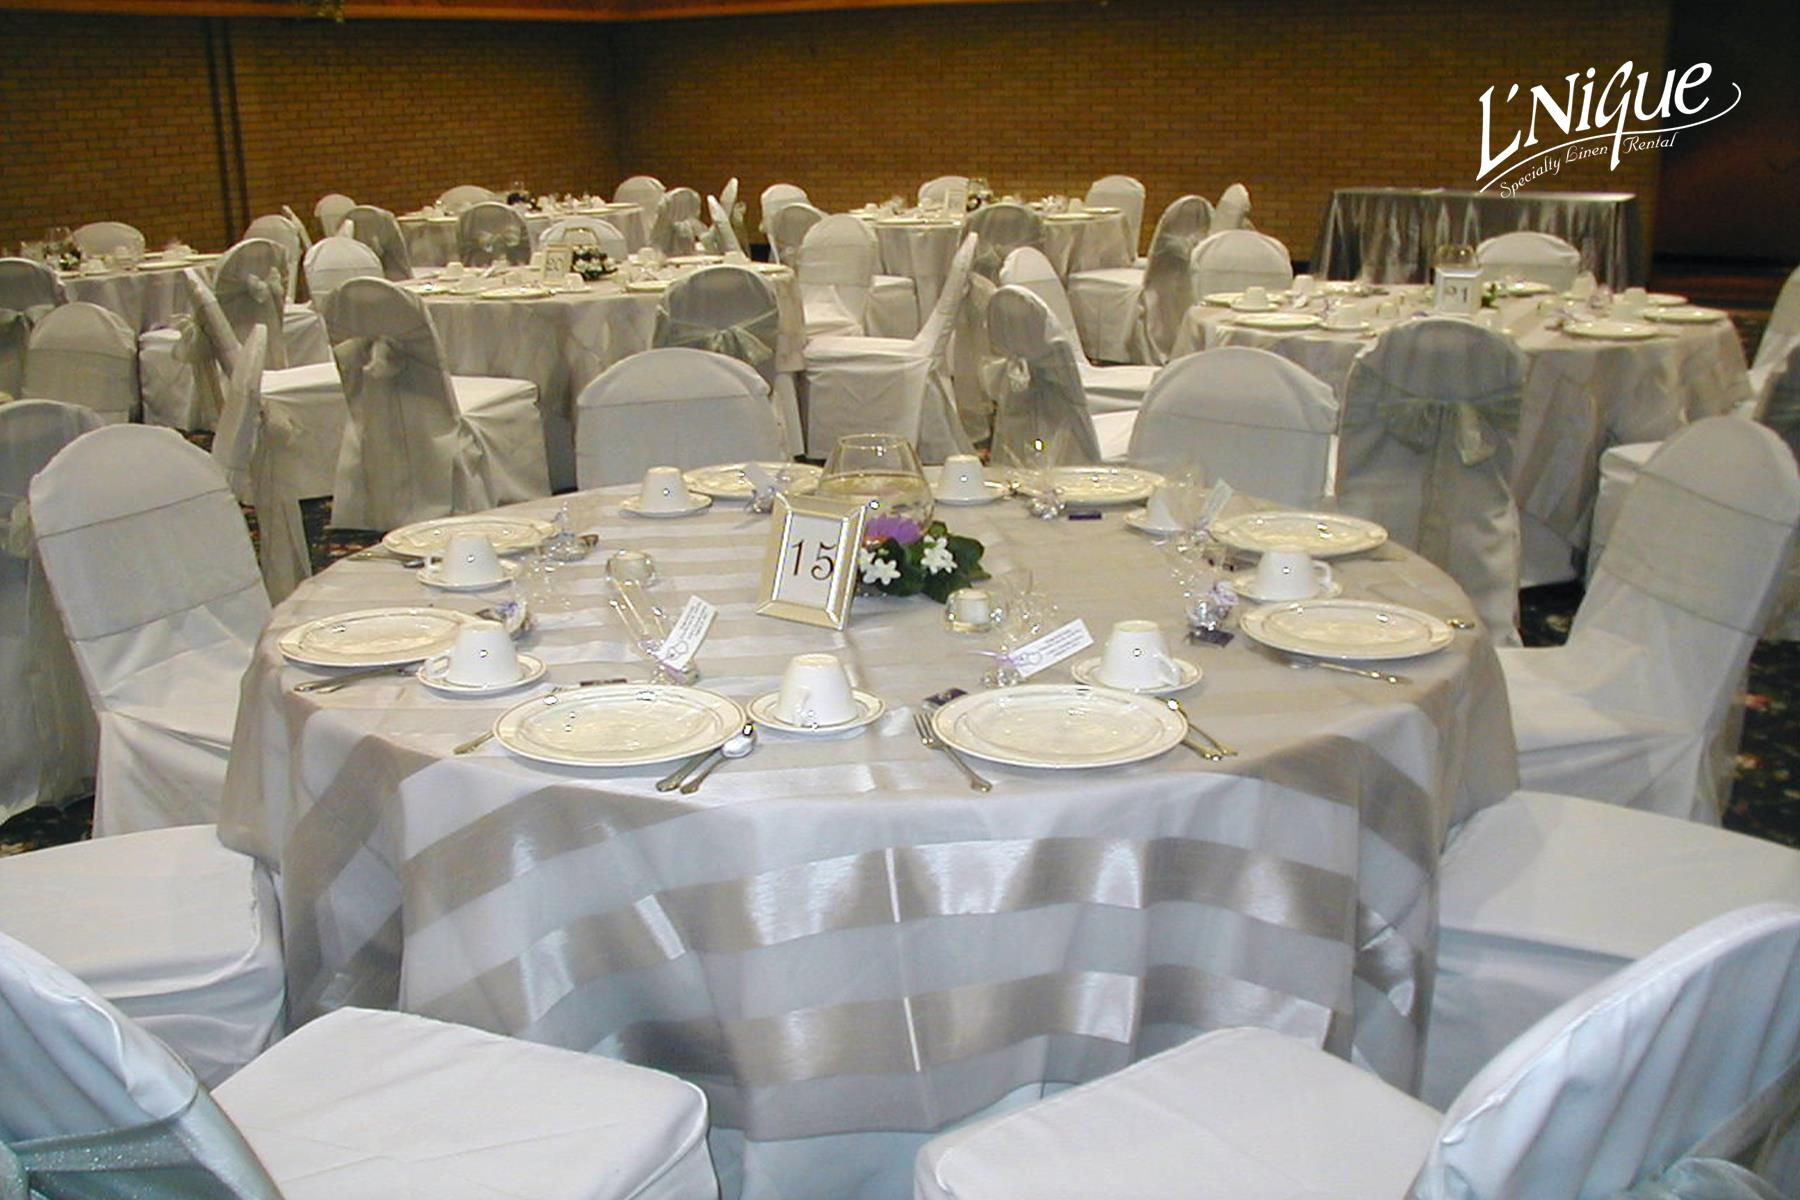 chair covers rental cleveland ohio leather rolling eternity stripe silver overlay specialty linen